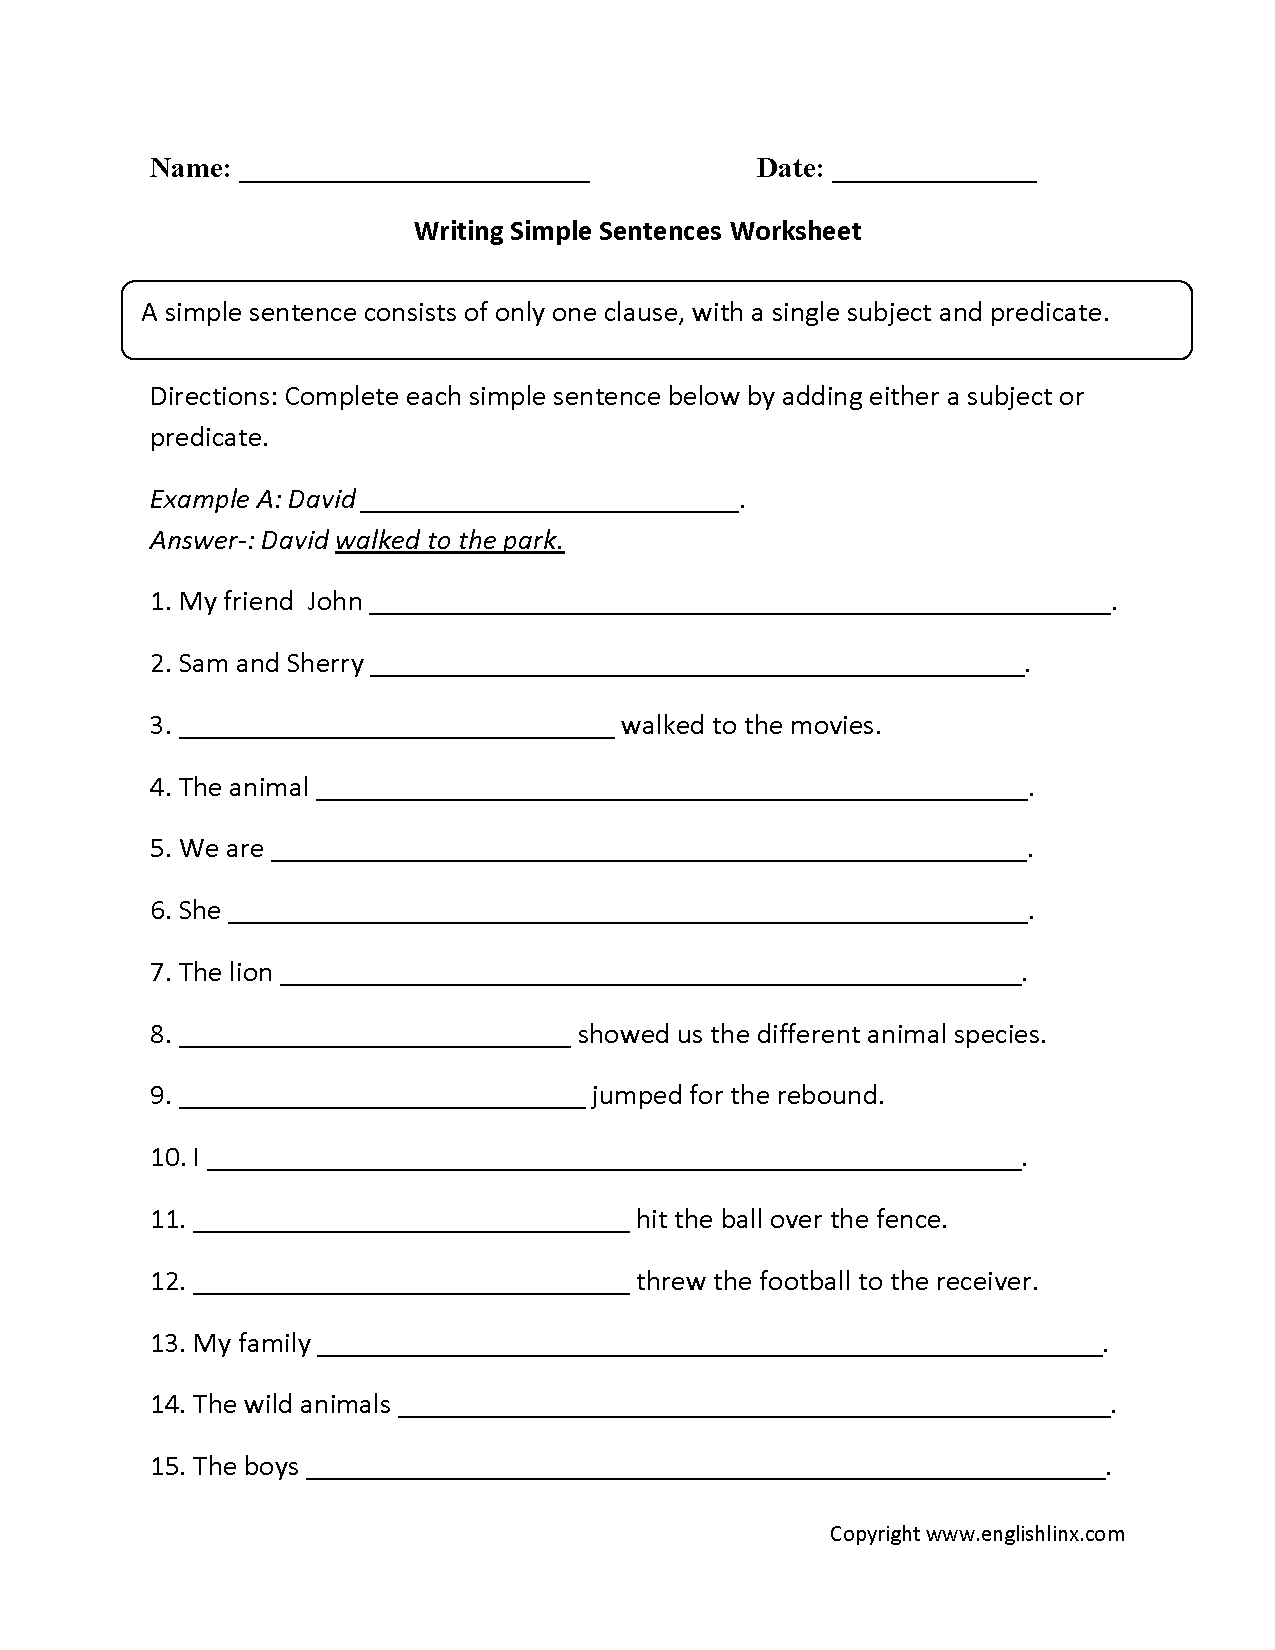 Sentences Worksheets – Fifth Grade Writing Worksheets